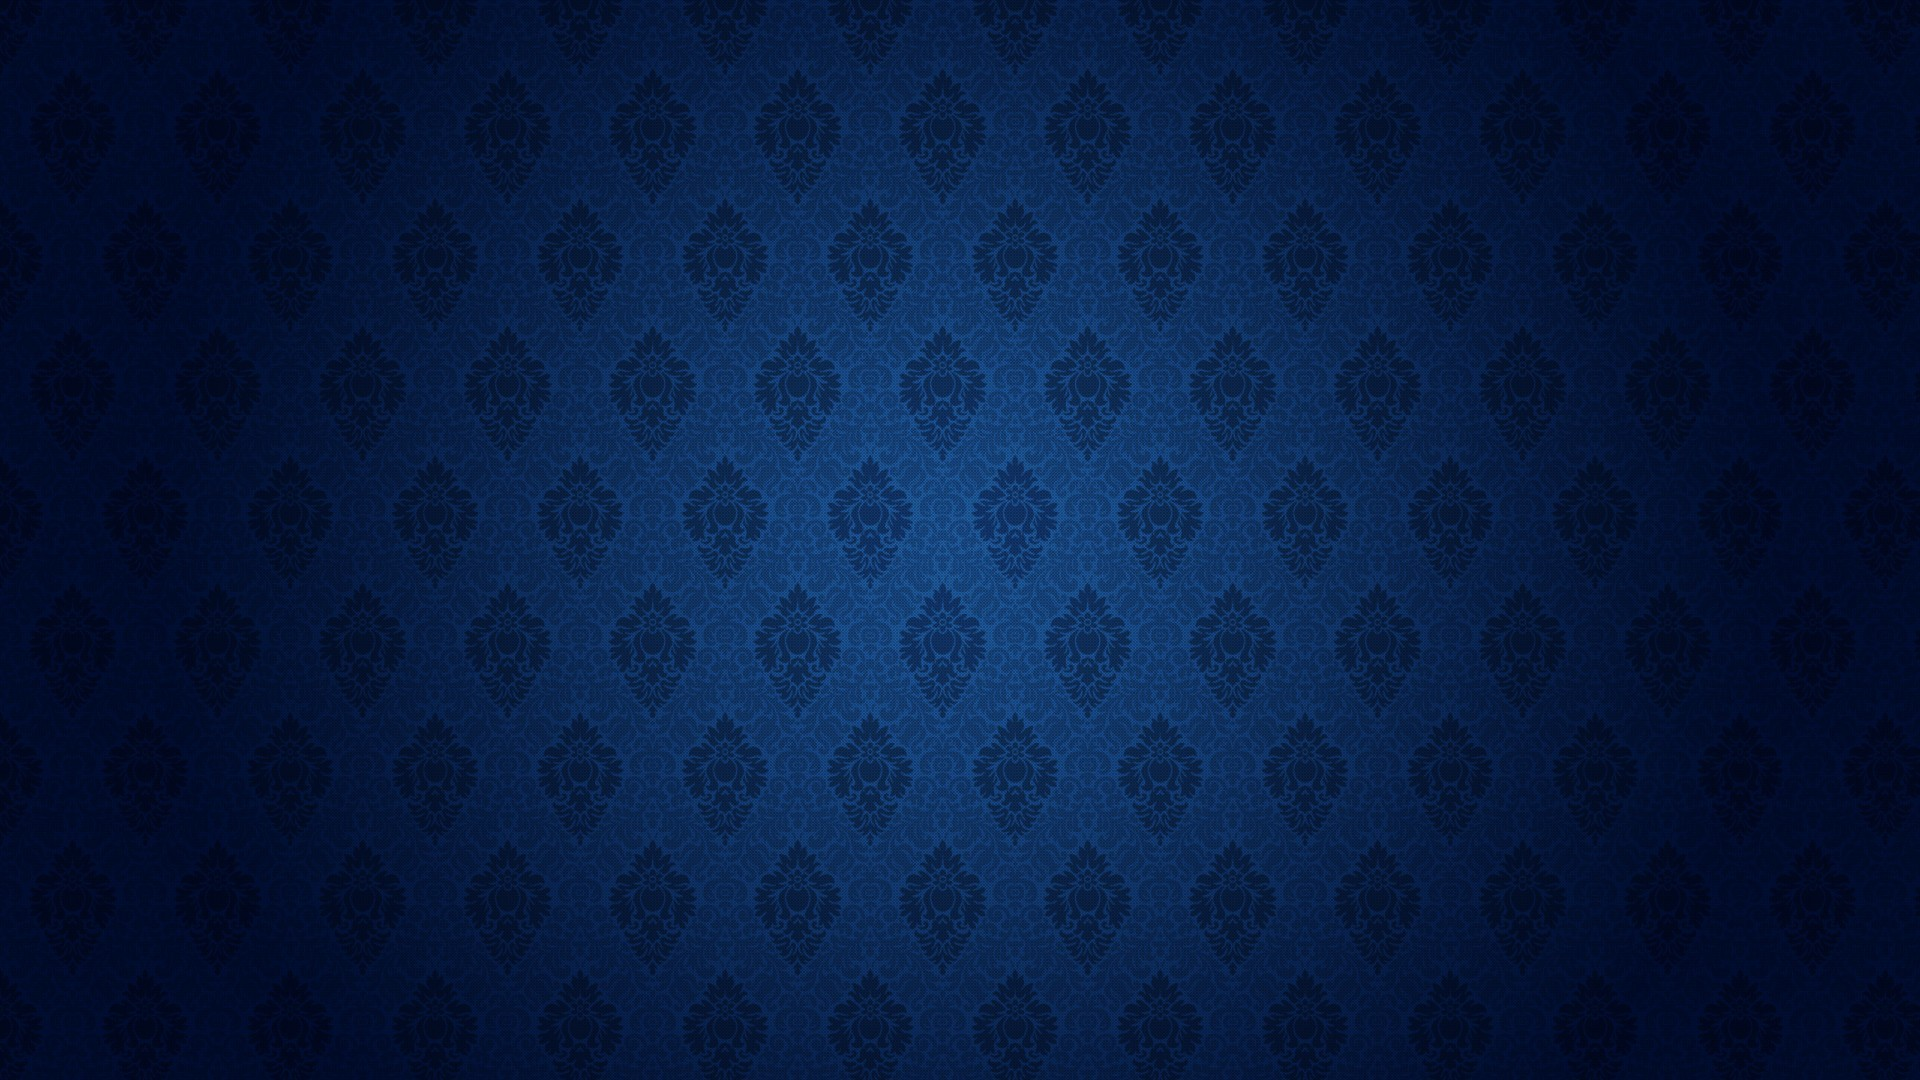 Hd Painting Wallpapers Download Royal Blue Backgrounds 183 ①